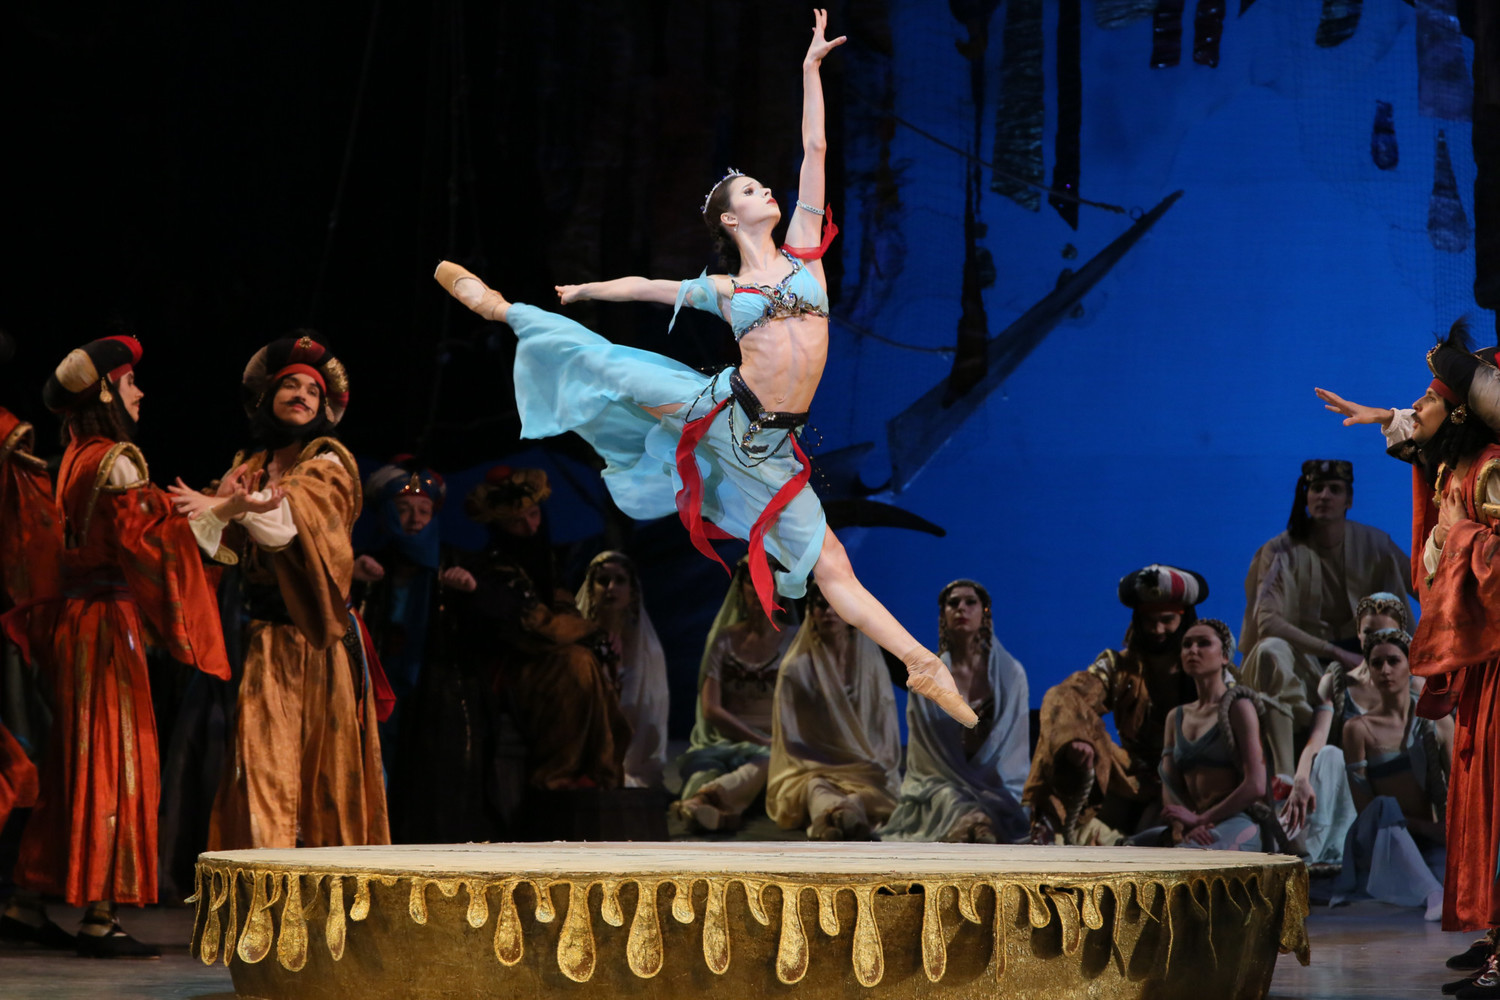 BWW Review: MARIINSKY BALLET: LE CORSAIRE at The Kennedy Center